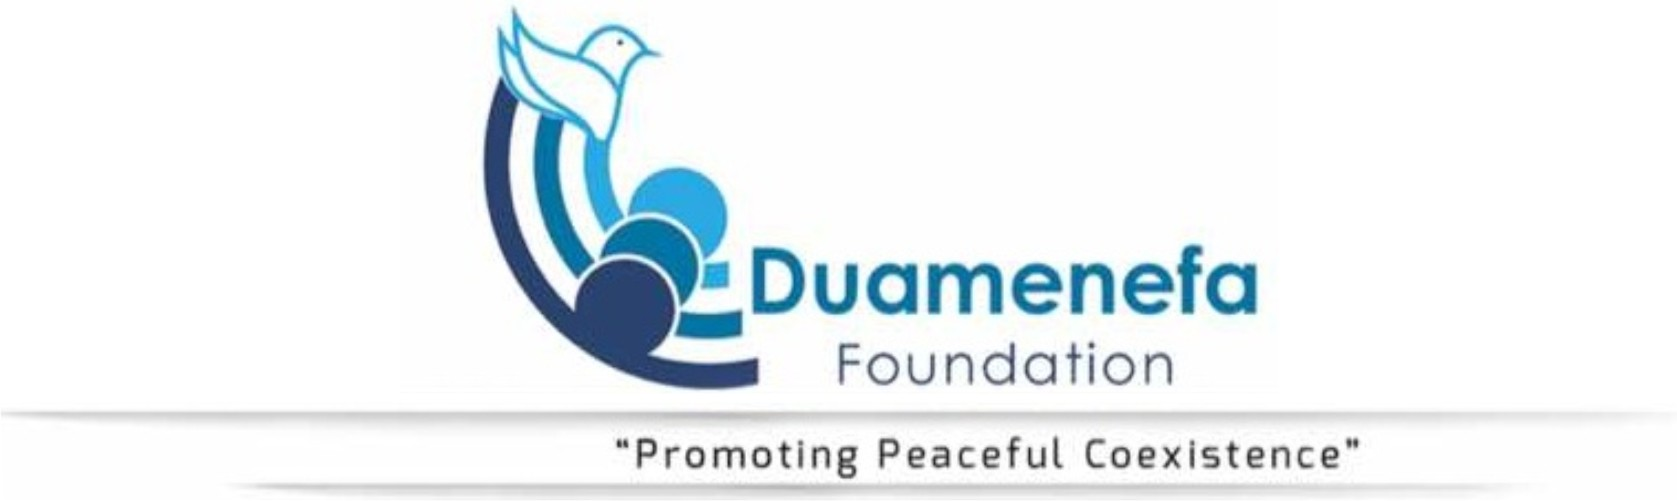 Duamenefa Foundation